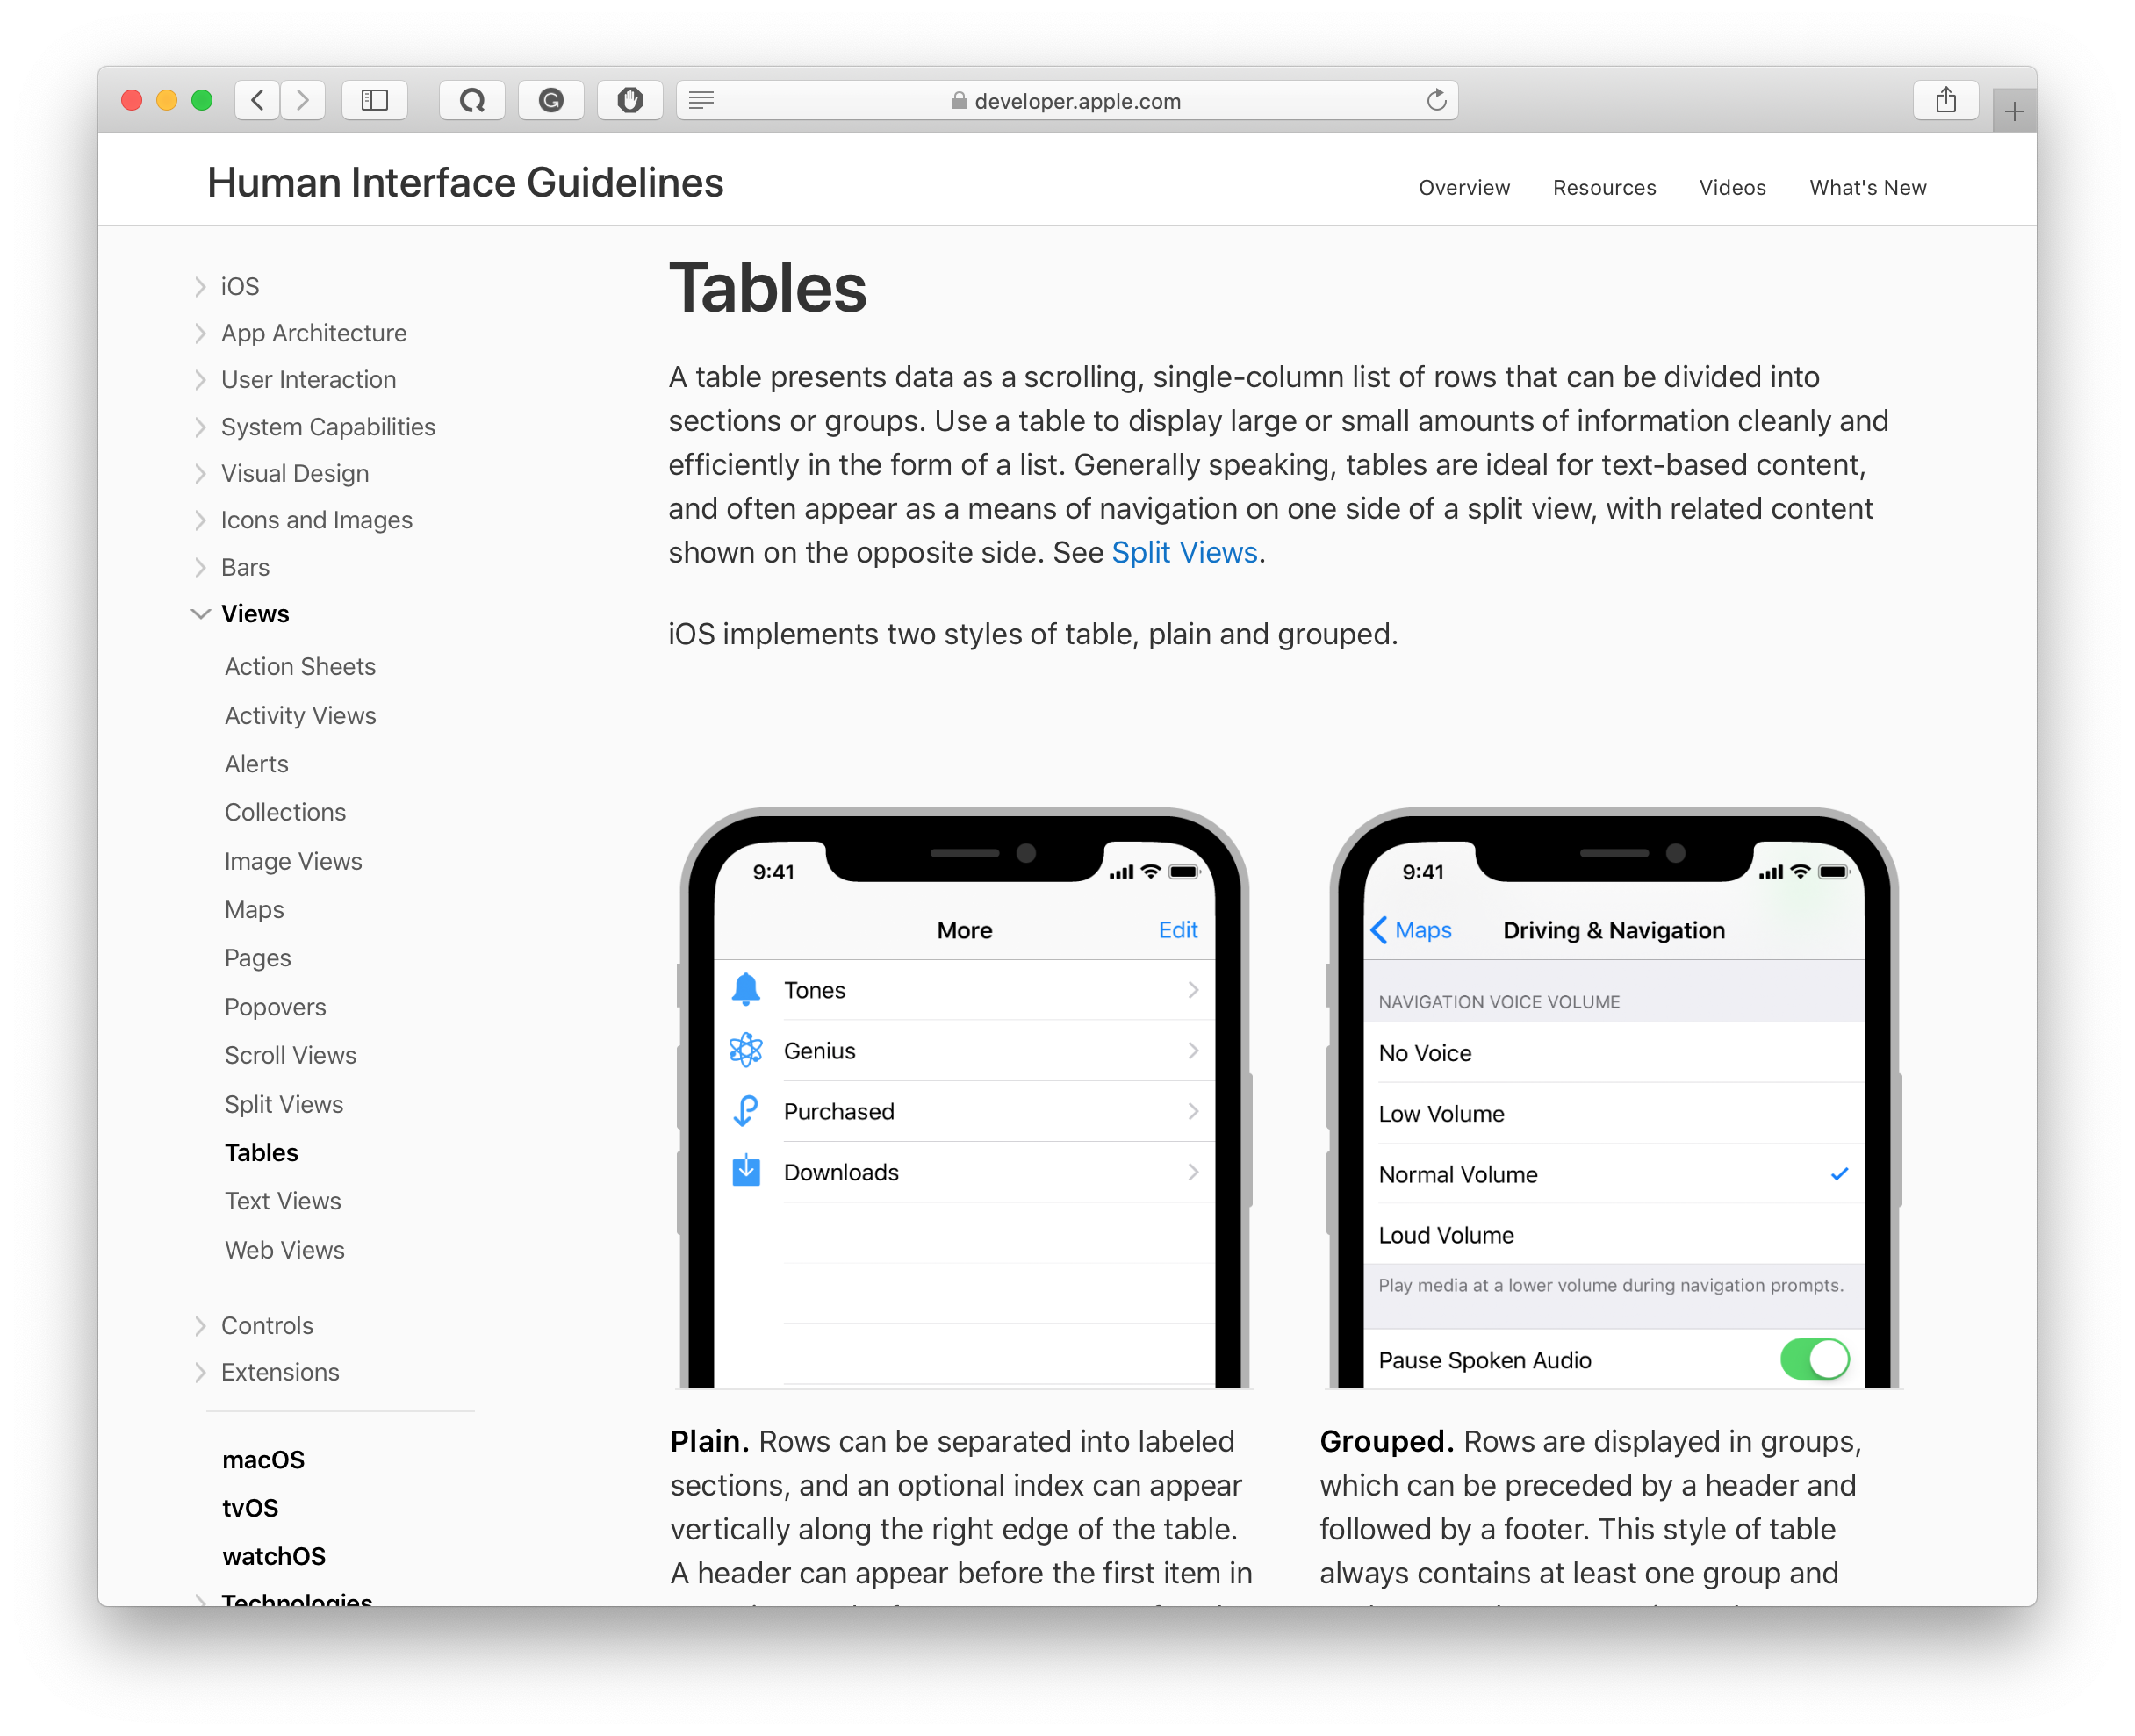 tables in apple's human interface guidelines